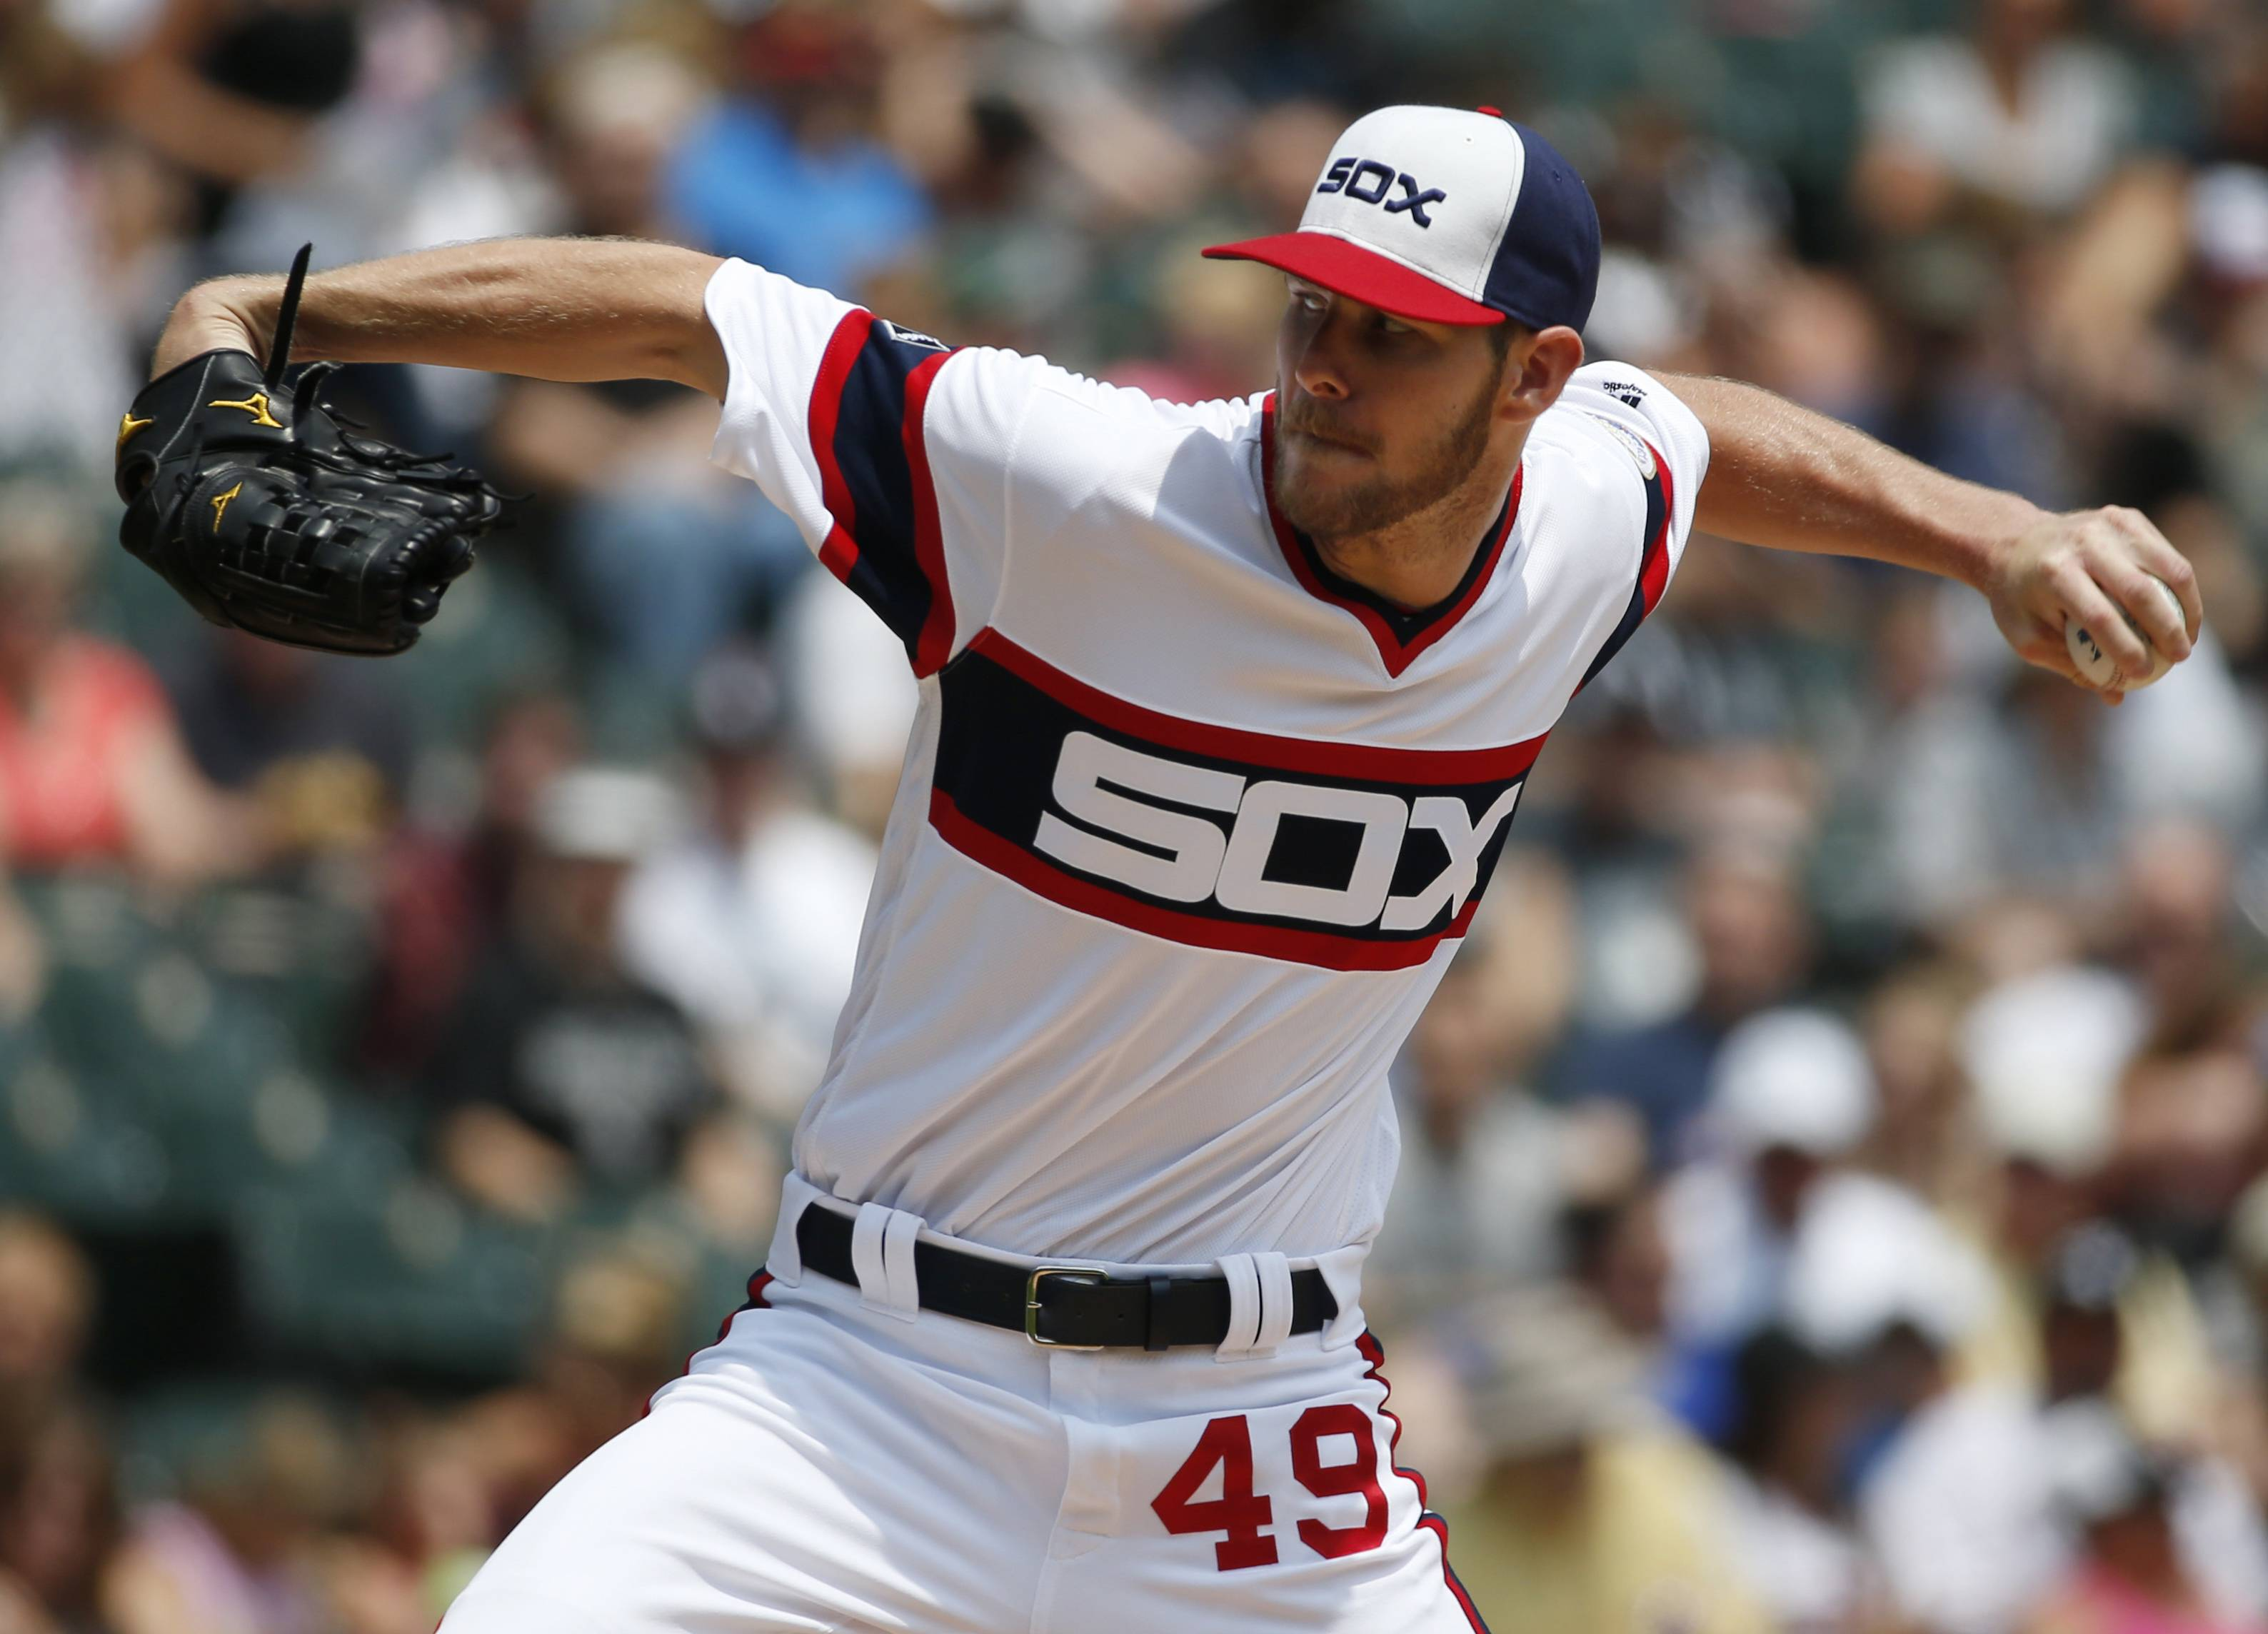 After serving a five-day suspension for destroying the 1976 throwback uniforms the Chicago White Sox were scheduled to wear against the Tigers Saturday, ace starter Chris Sale returns to pitch against the Cubs Thursday night at Wrigley Field.